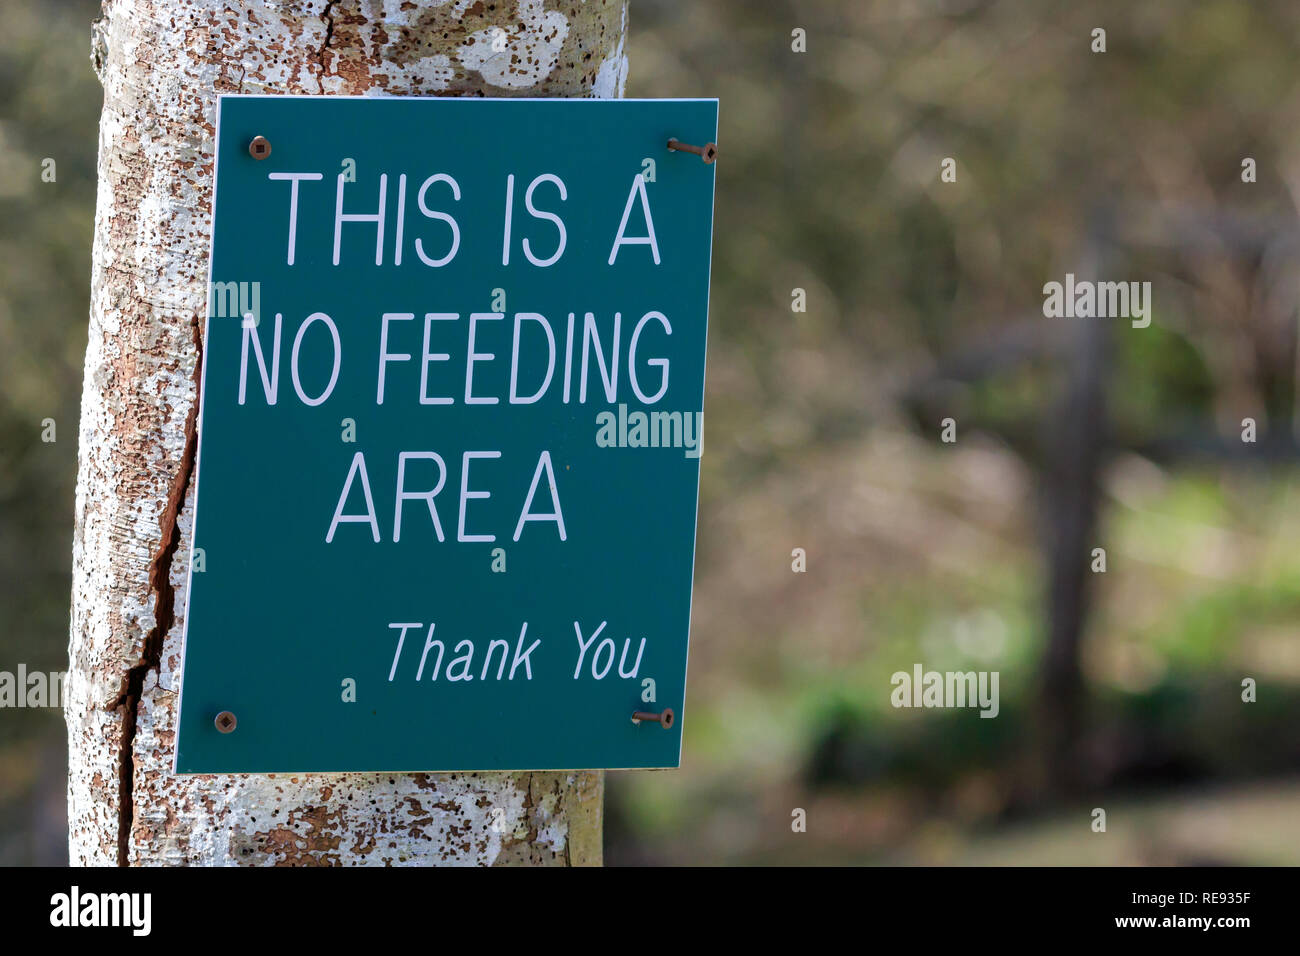 Green No Feeding Area sign - Stock Image